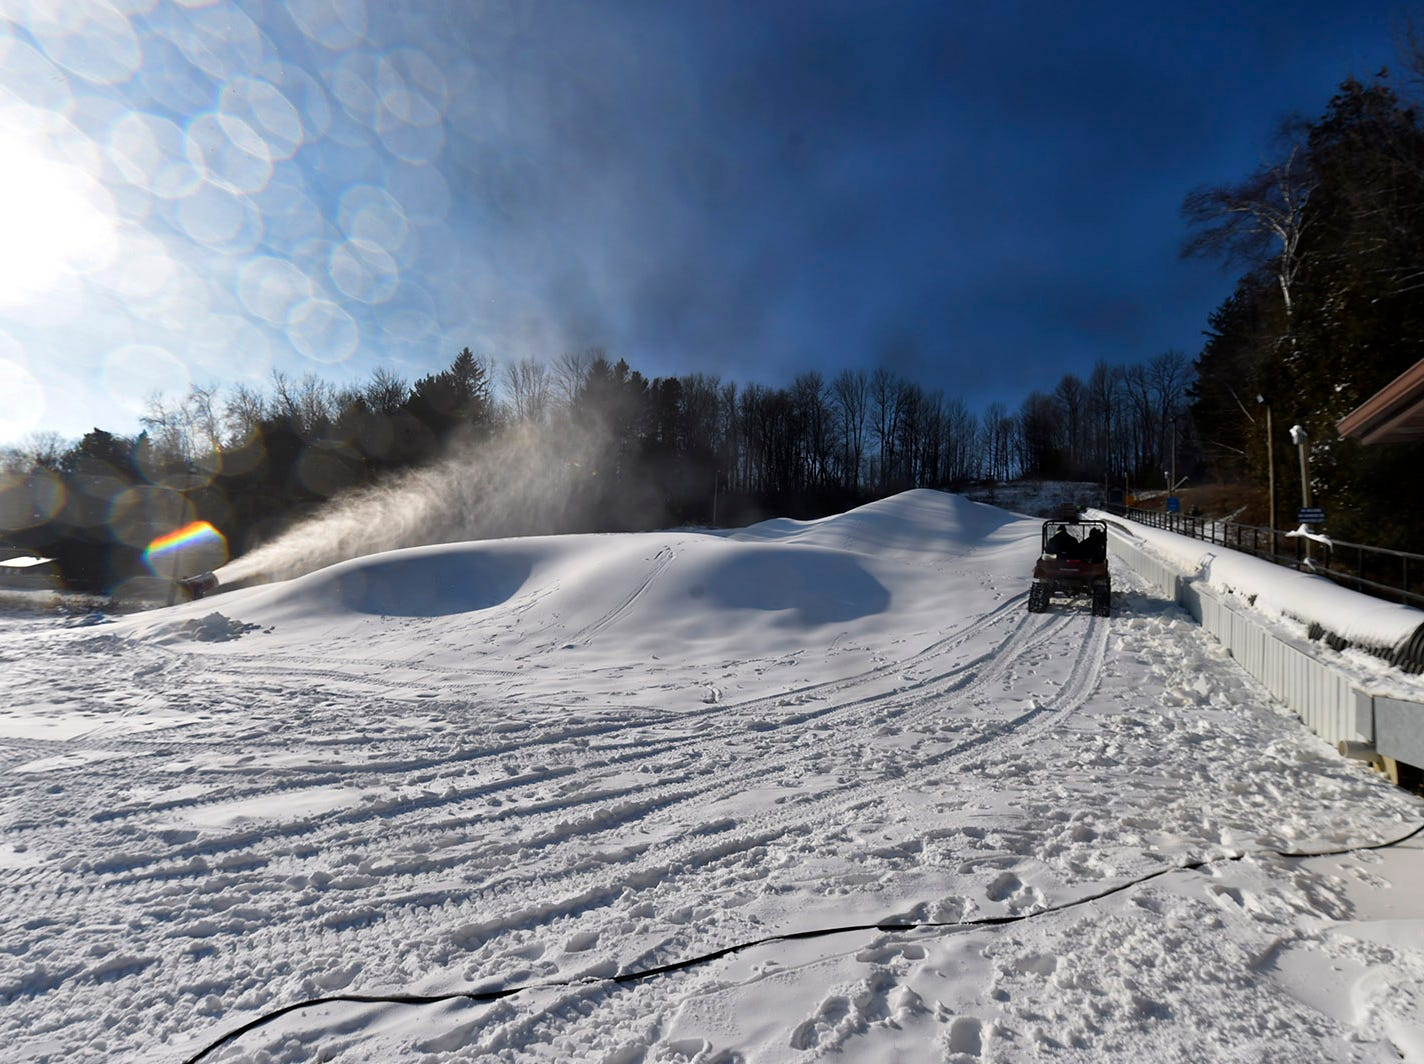 Snow guns building a snow base at Winter Park in Kewaunee on Dec. 10, 2018. Tina M. Gohr/USA TODAY NETWORK-Wisconsin